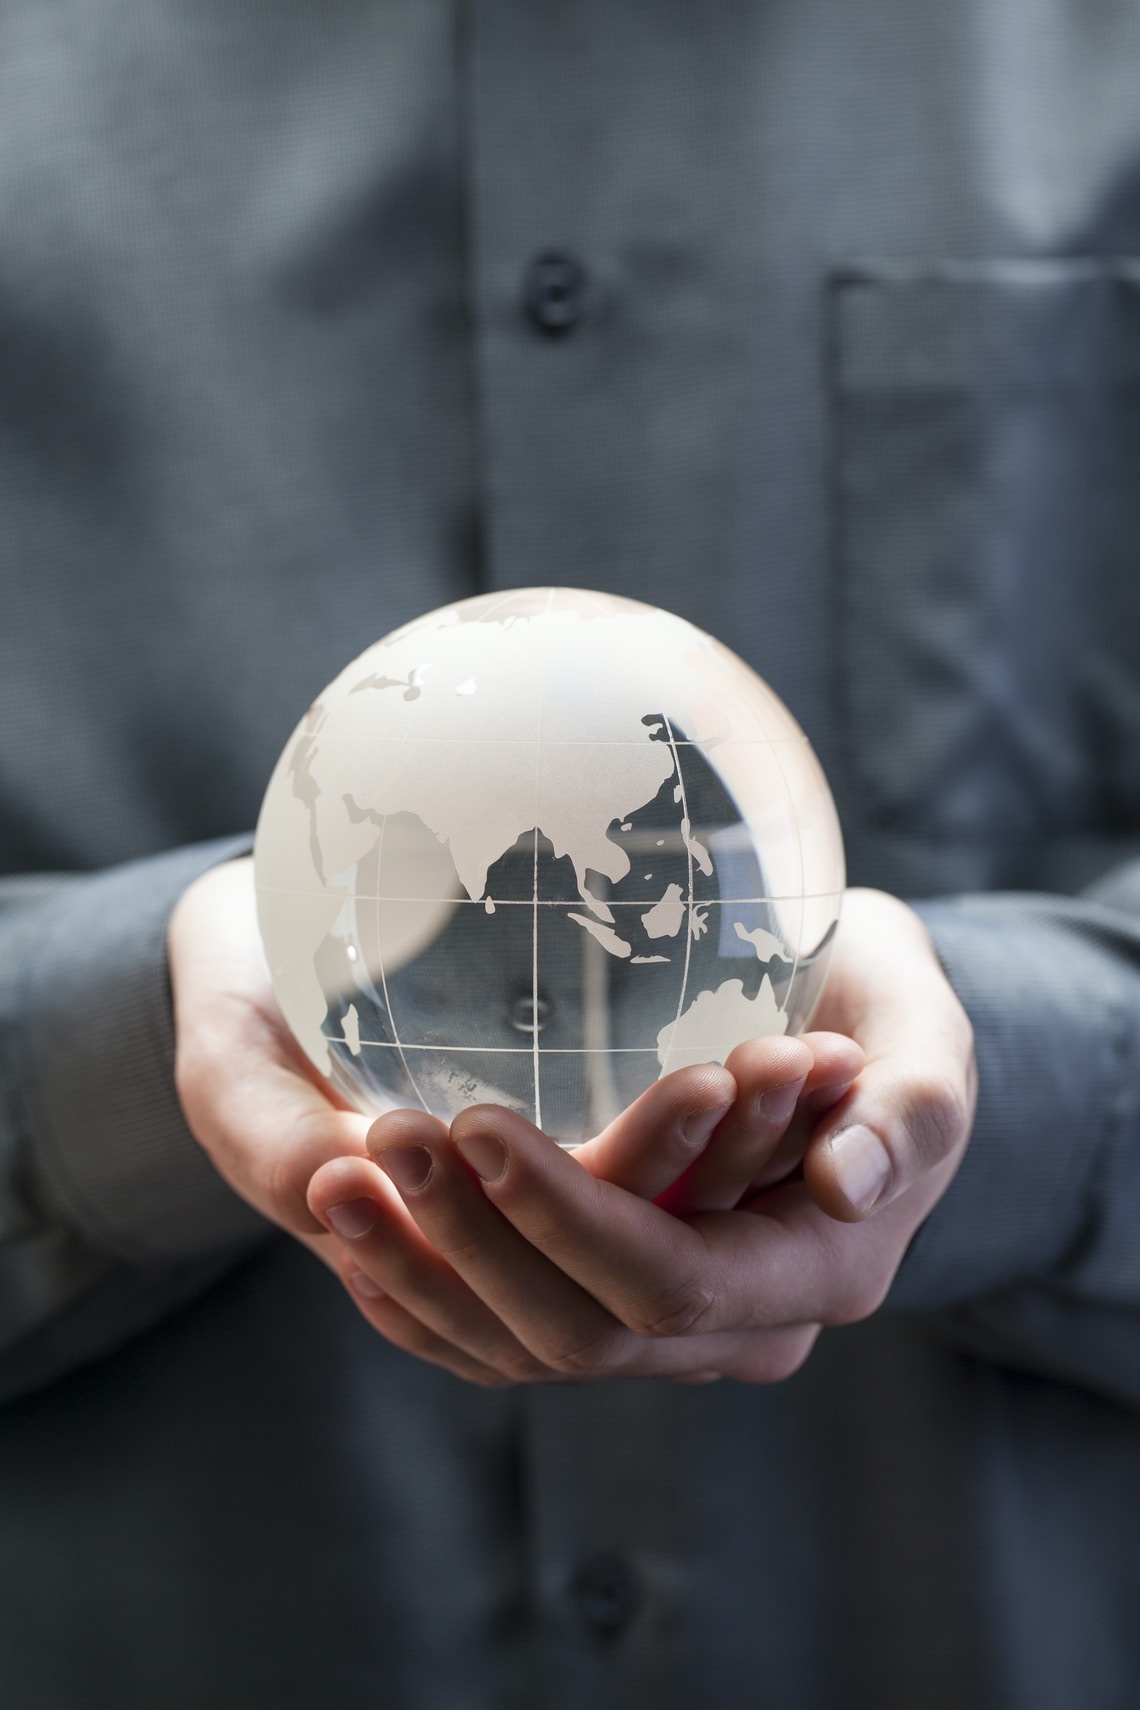 shallow focus photo of clear glass globe table ornament